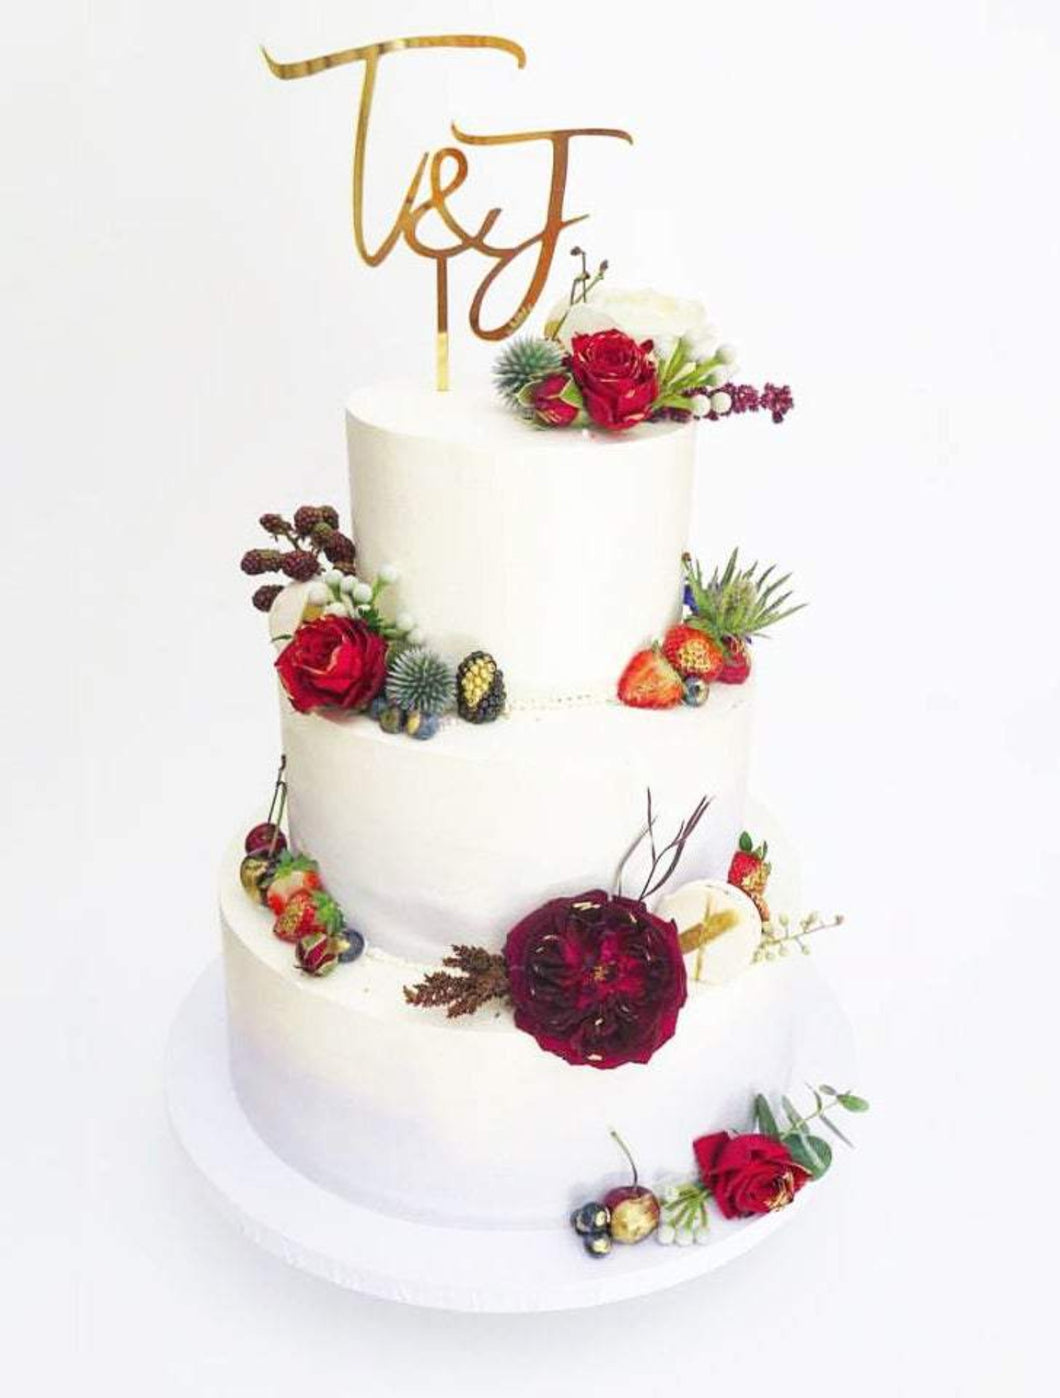 Custom Double Initials Wedding Cake Topper